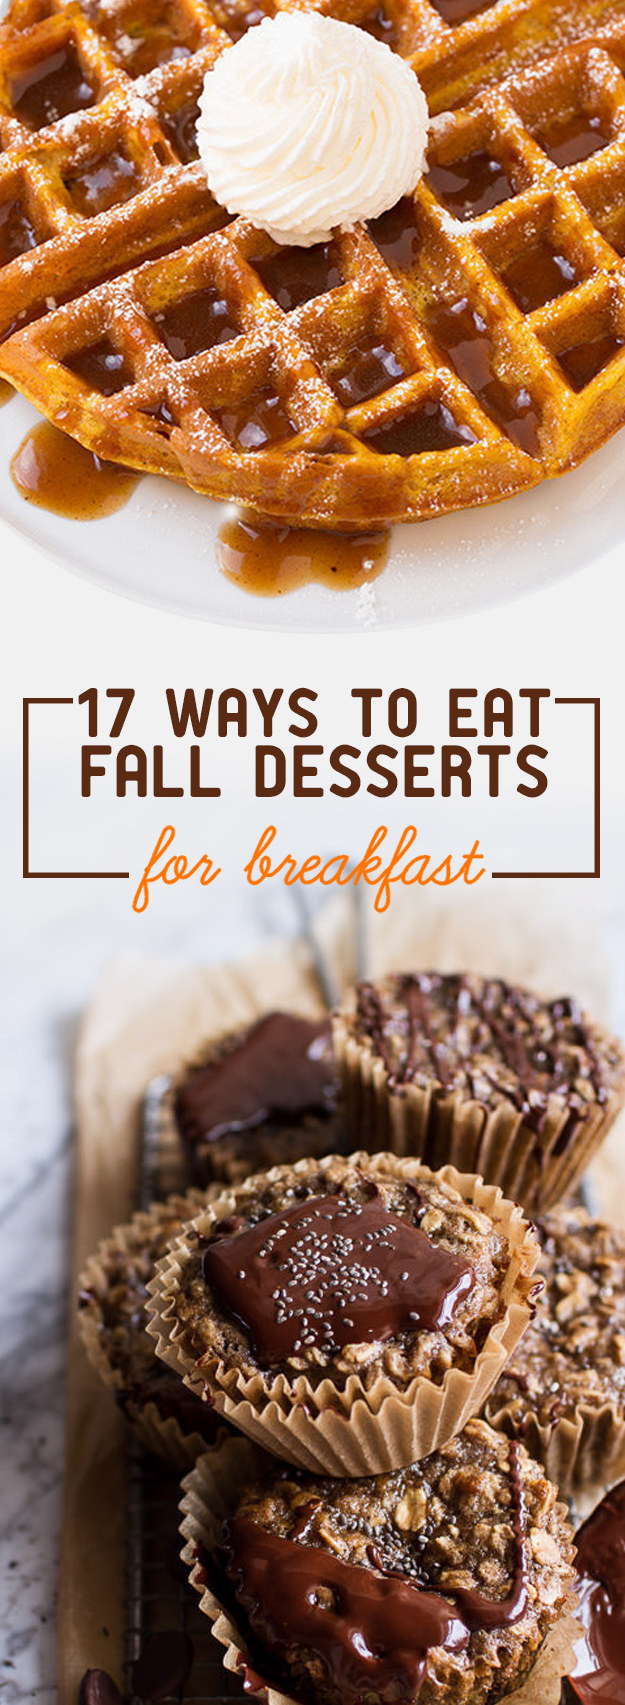 17 Fall Breakfasts That Will Satisfy Your Sweet Tooth